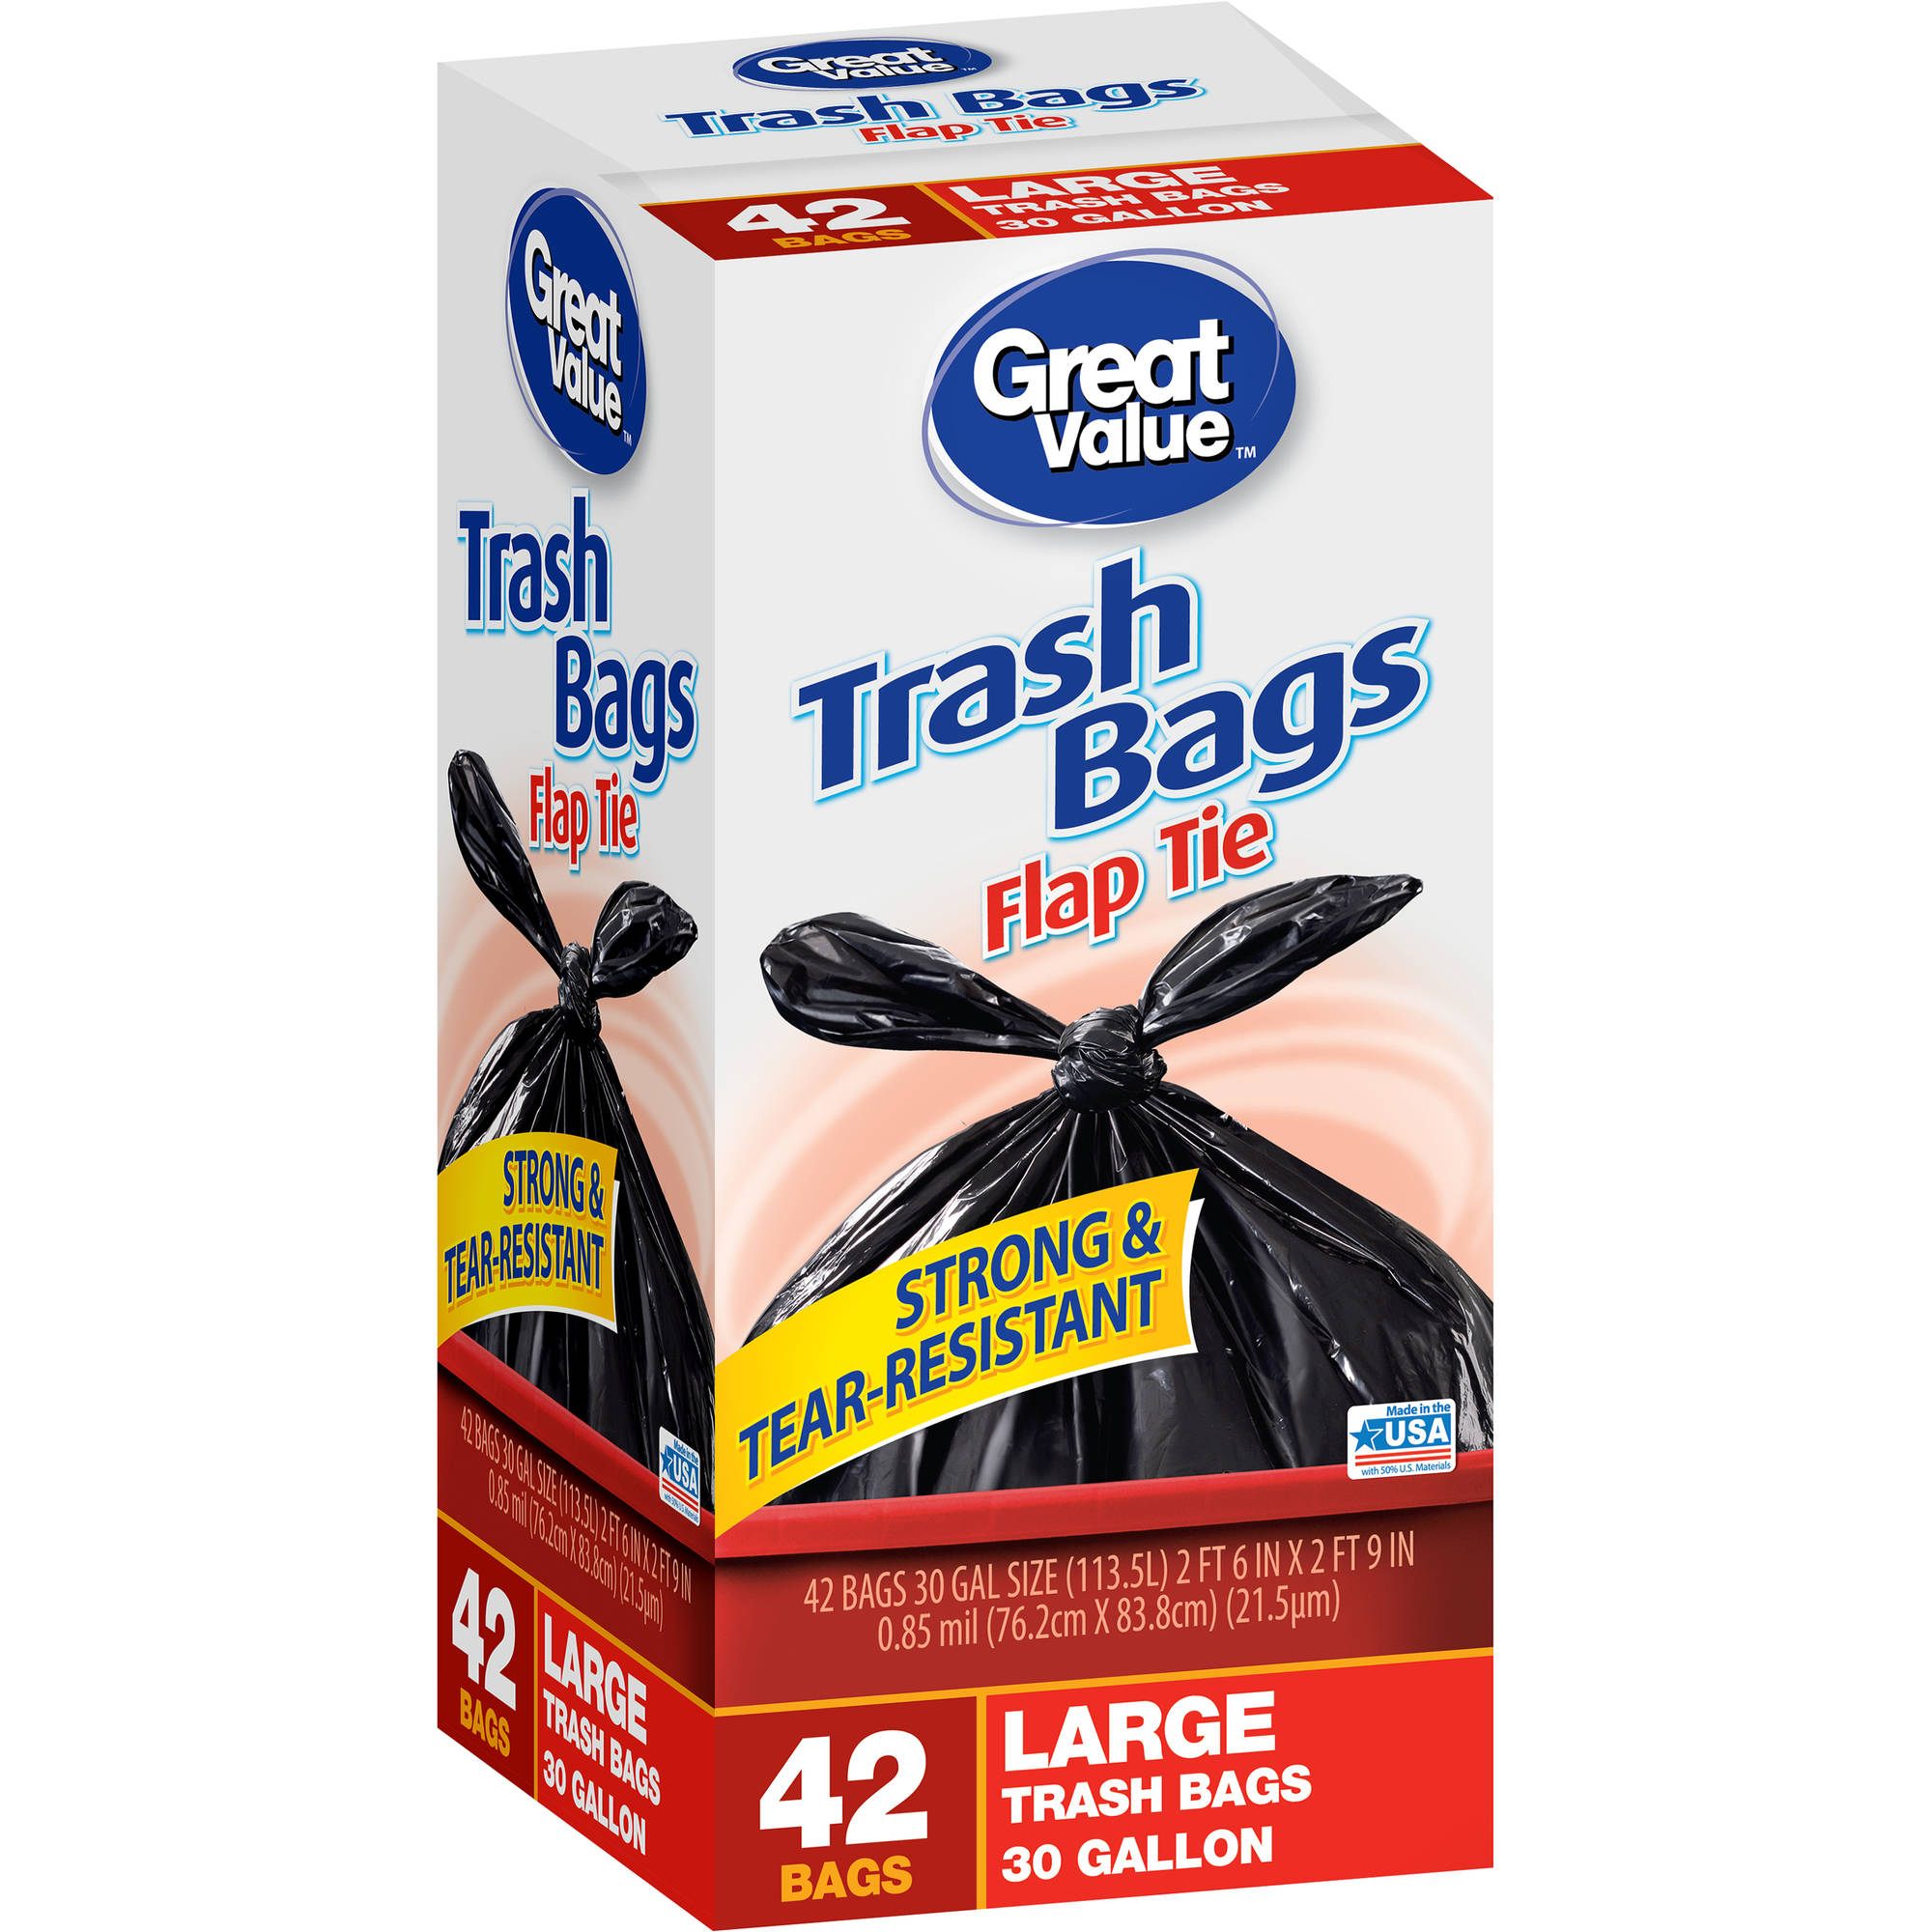 Great Value Flap Tie Closure Large Trash Bags, 30 gal, 42 count